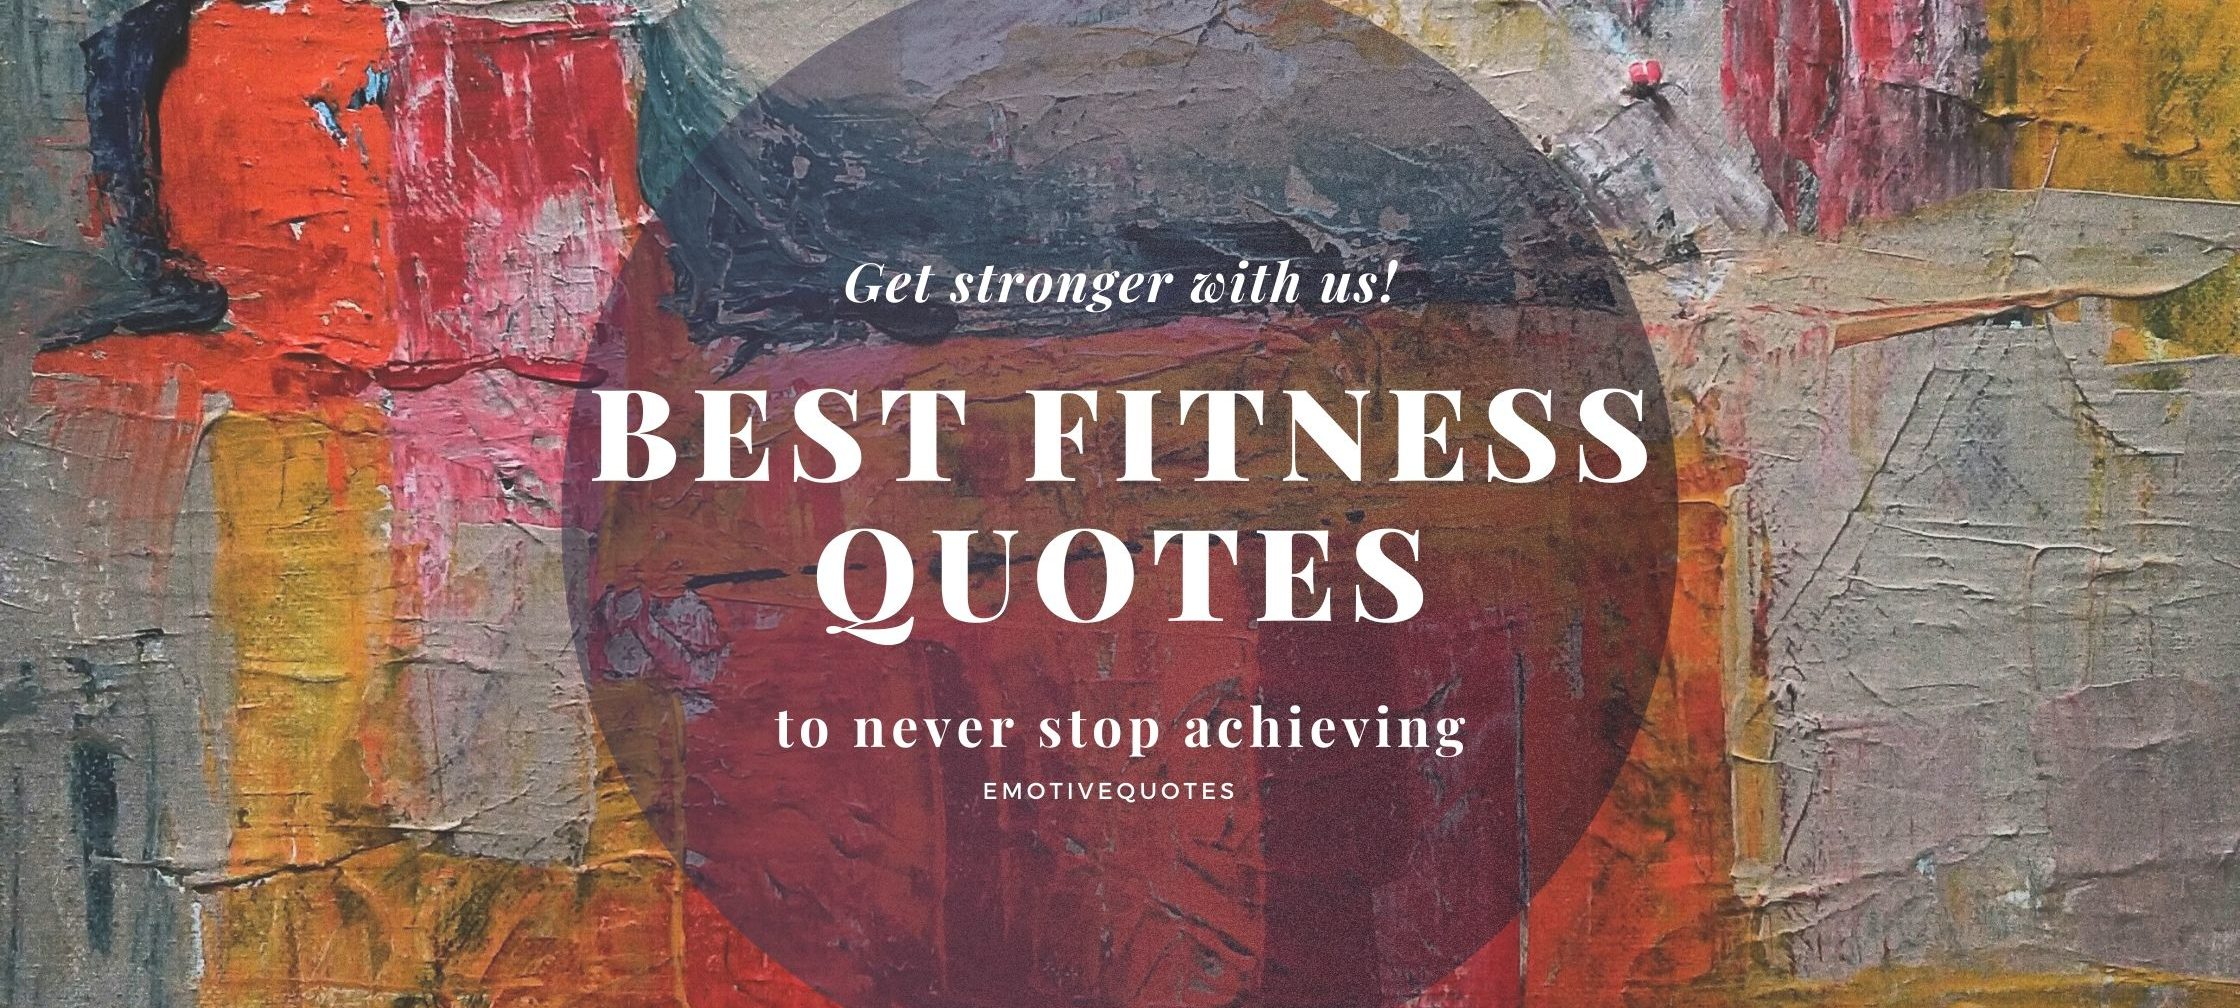 Emotive-quotes-best-fitness-quotes